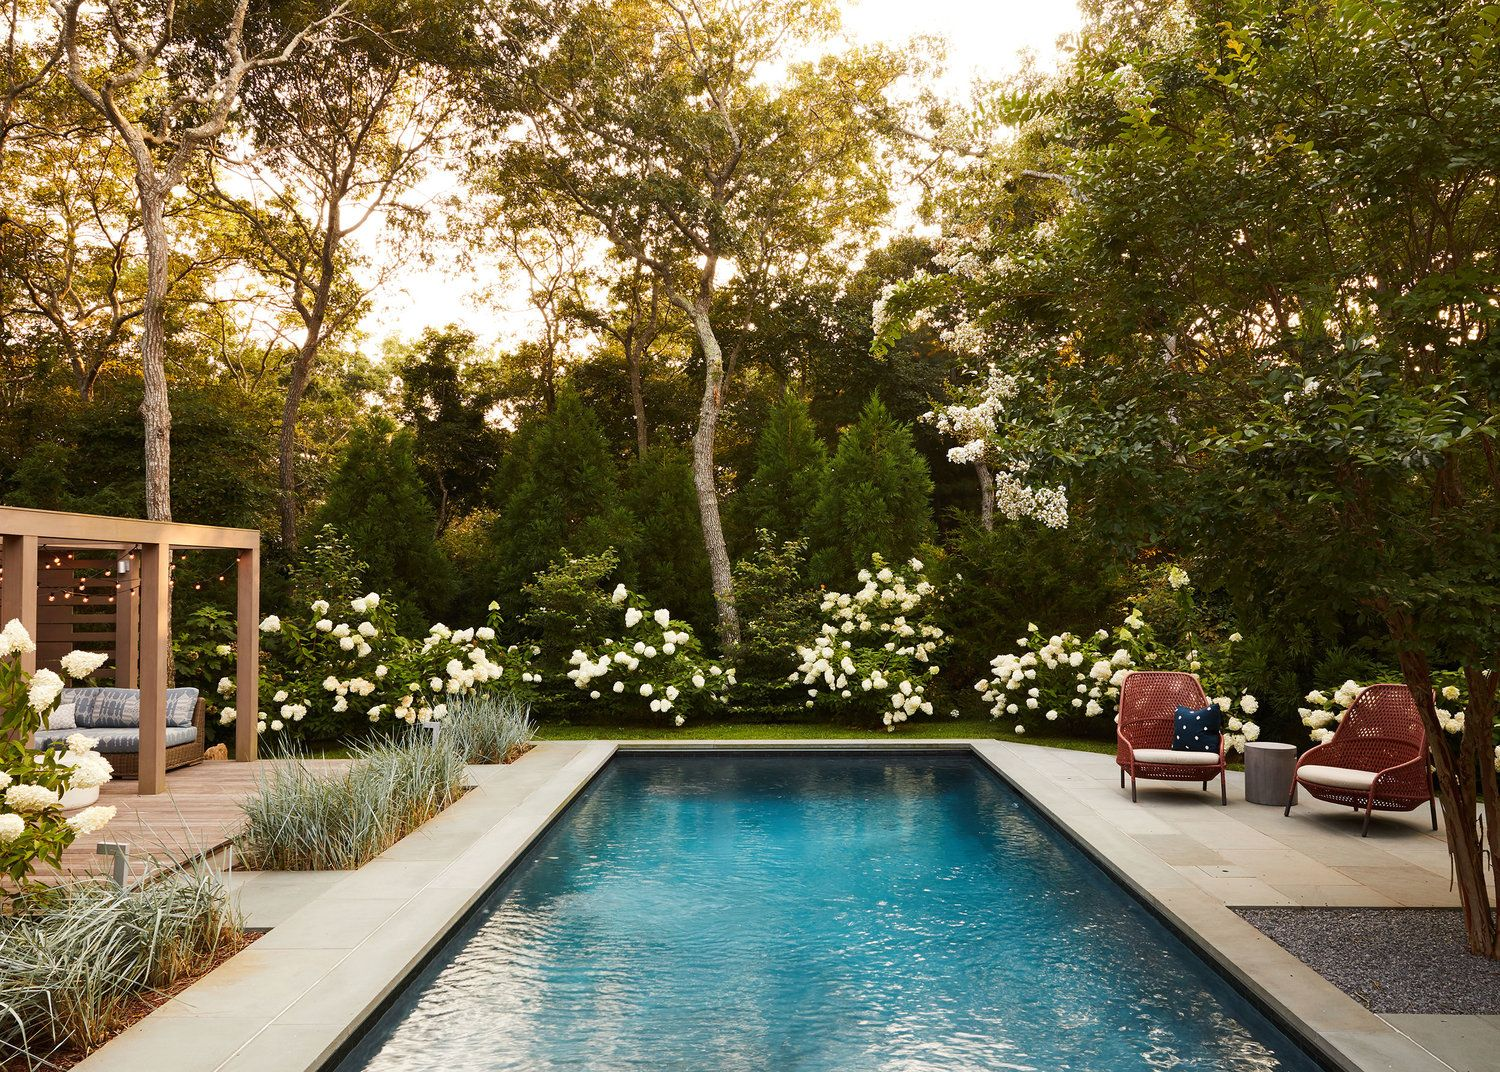 37 Breathtaking Backyard Ideas - Outdoor Space Design ... on terrace lighting, herbaceous border designs, courtyard designs, terrace farming, terrace steps, terrace ideas for small spaces, terrace house design, best energy efficient home designs, terrace gardening, terrace landscape, wooden house designs, gazebo designs, patio designs, loggia designs, outdoor entertainment ideas and designs, terrace stone, pergola designs, terrace design in the philippines, brick wall planter box designs, product landscape designs,